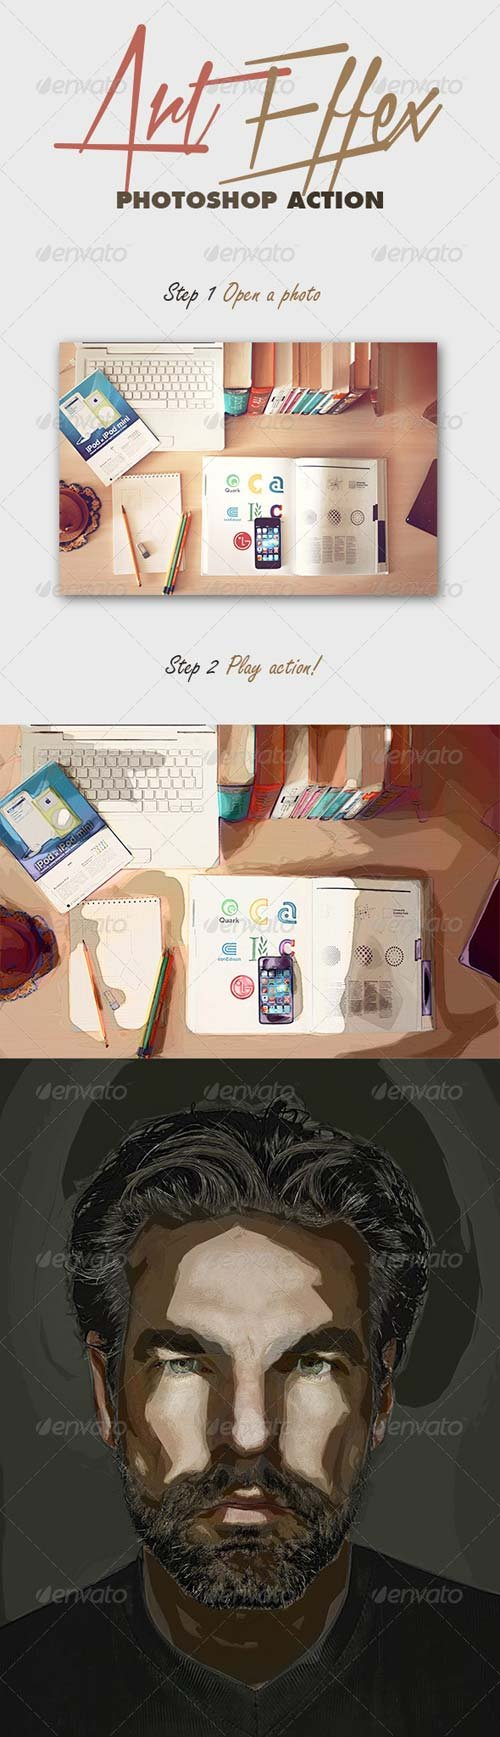 GraphicRiver ArtEffex Photoshop Action